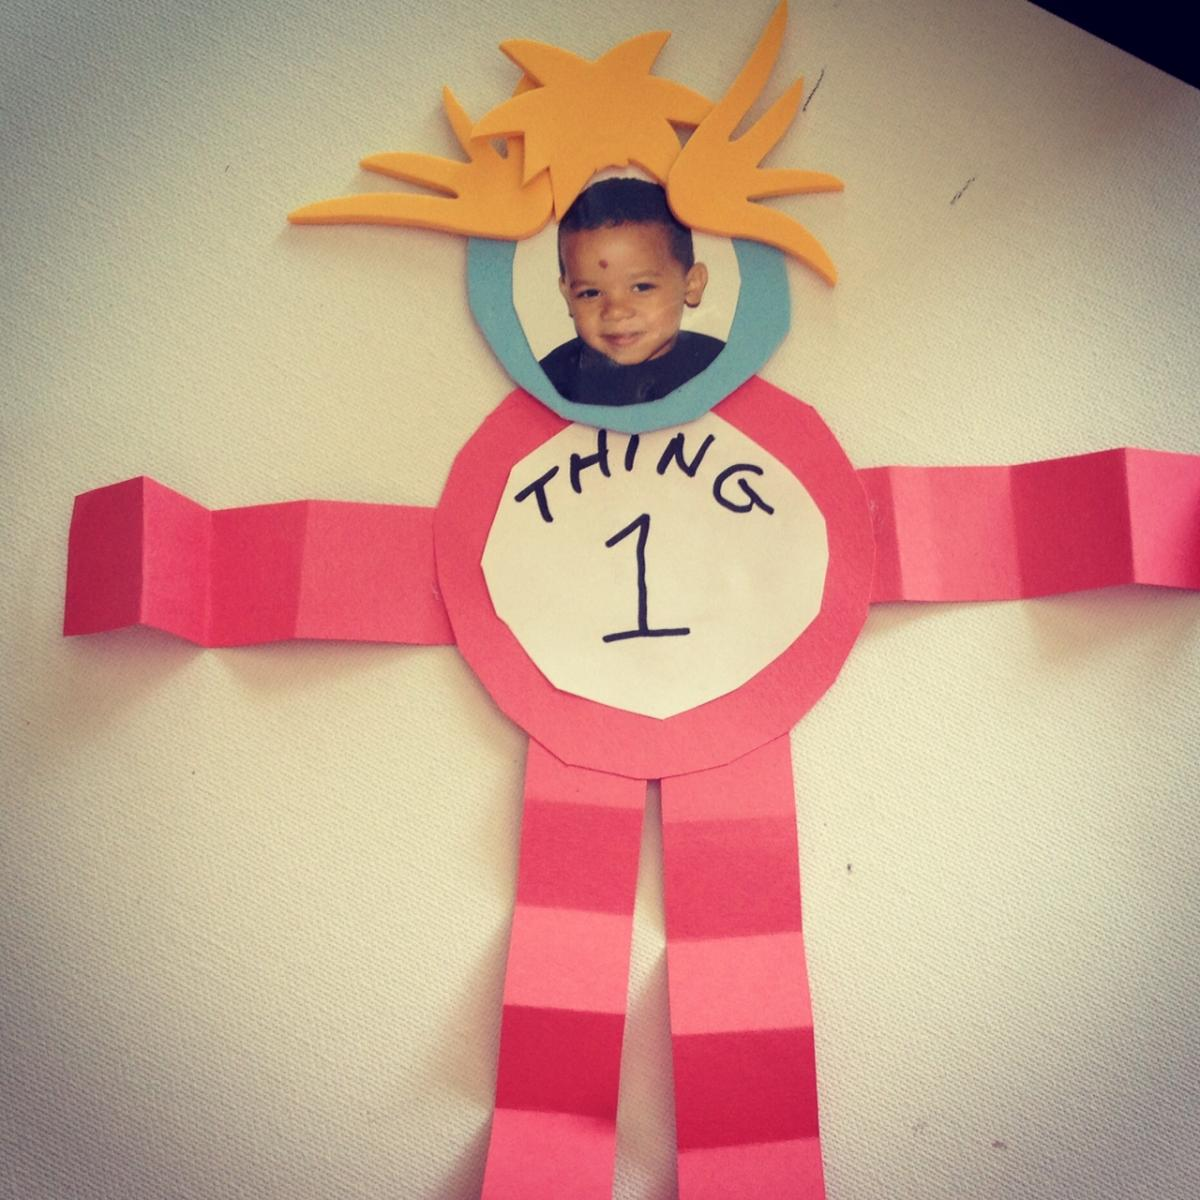 Easy dr seuss crafts - Thing 1 And Thing 2 Photo Craft Is A Cute Way To Use Your Child S Photo For A Dr Seuss Themed Event Or Party